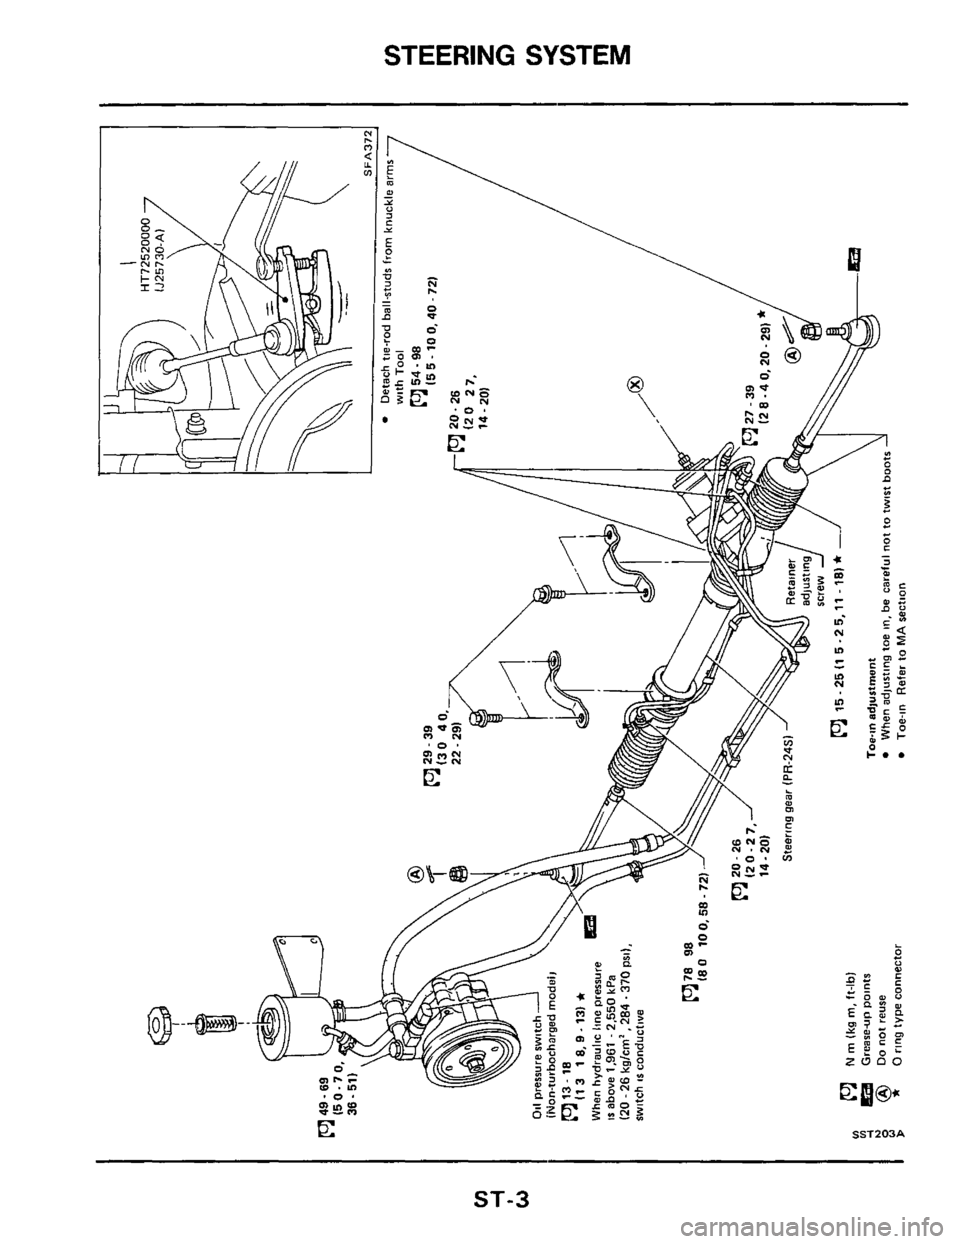 NISSAN 300ZX 1984 Z31 Steering System Workshop Manual, Page 3